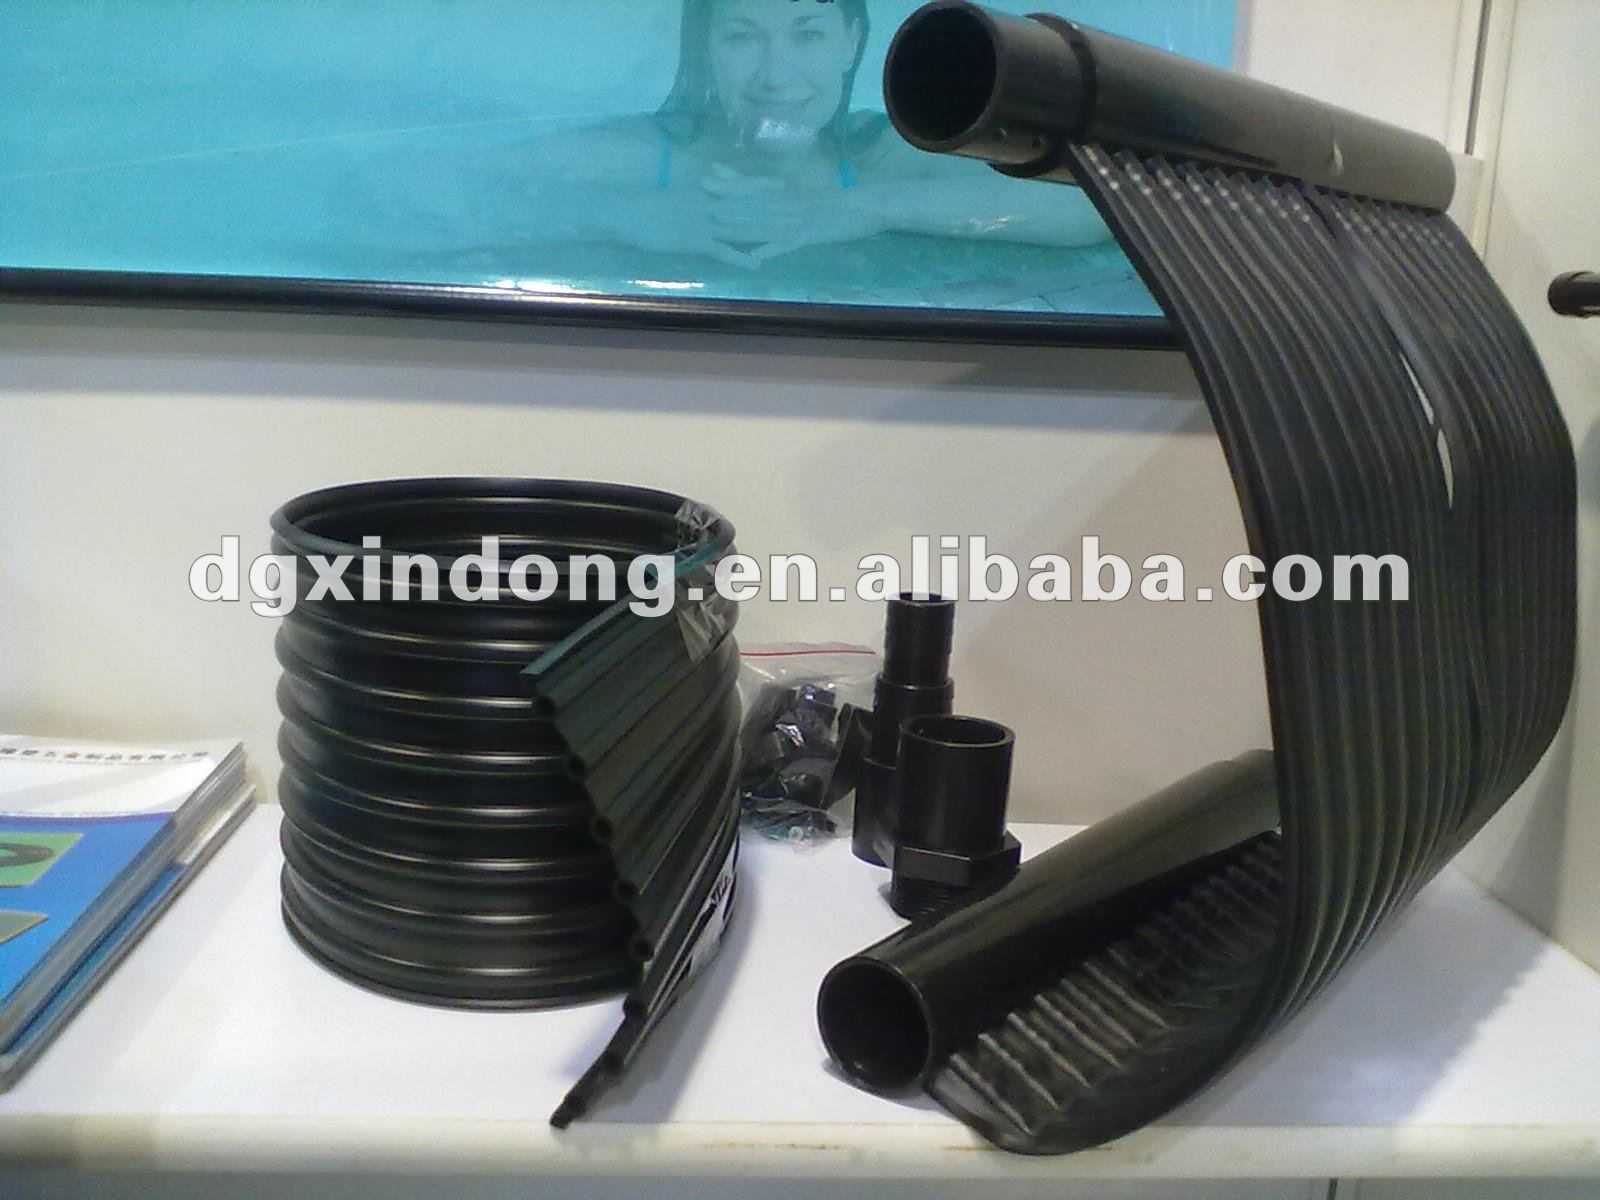 Diy solar pool heater making a homemade solar water heater for your amazing black rubber diy swimming pool solar water heater buy water heatersolar water water heater product on alibabacom with diy solar pool heater solutioingenieria Image collections